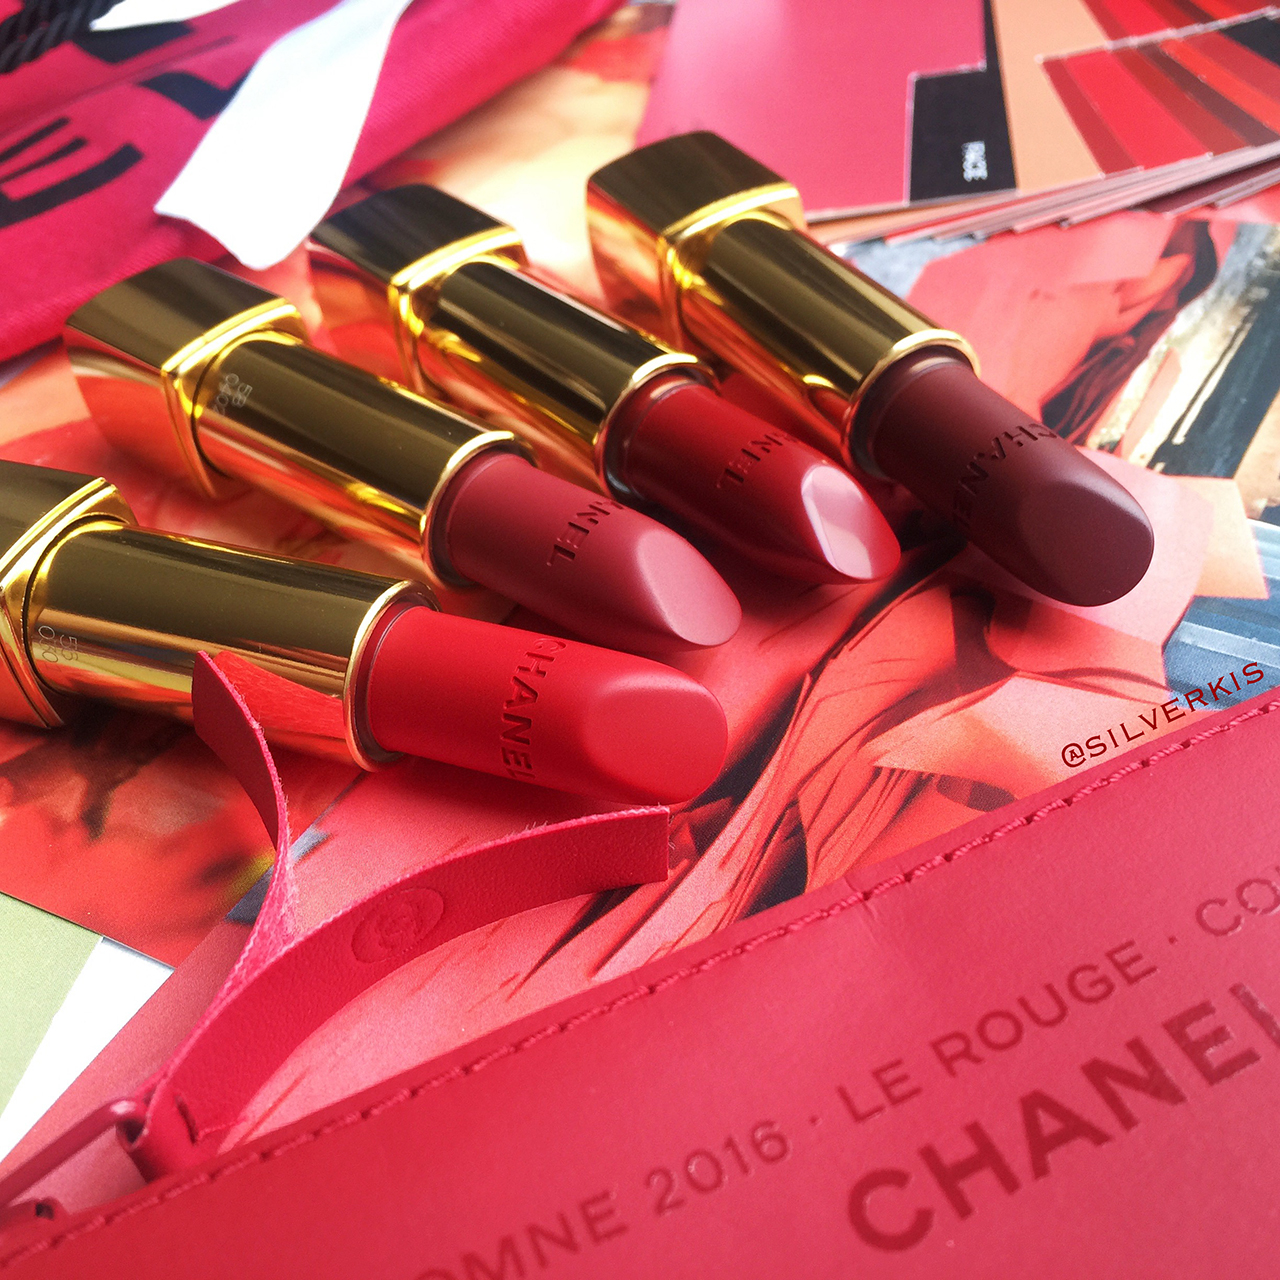 Chanel Le Rouge Collection lips